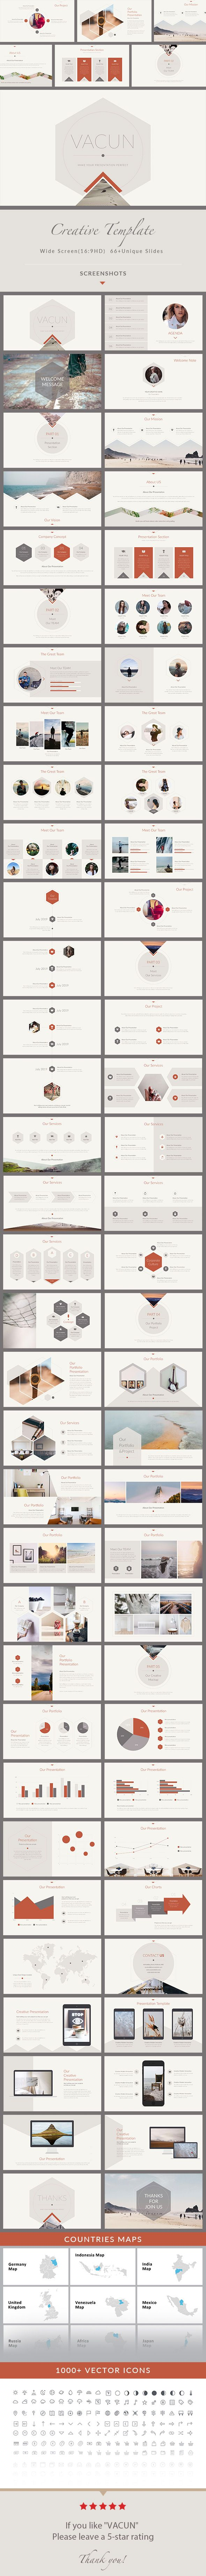 828 best ppt images on pinterest presentation design vacun creative powerpoint presentation template toneelgroepblik Images